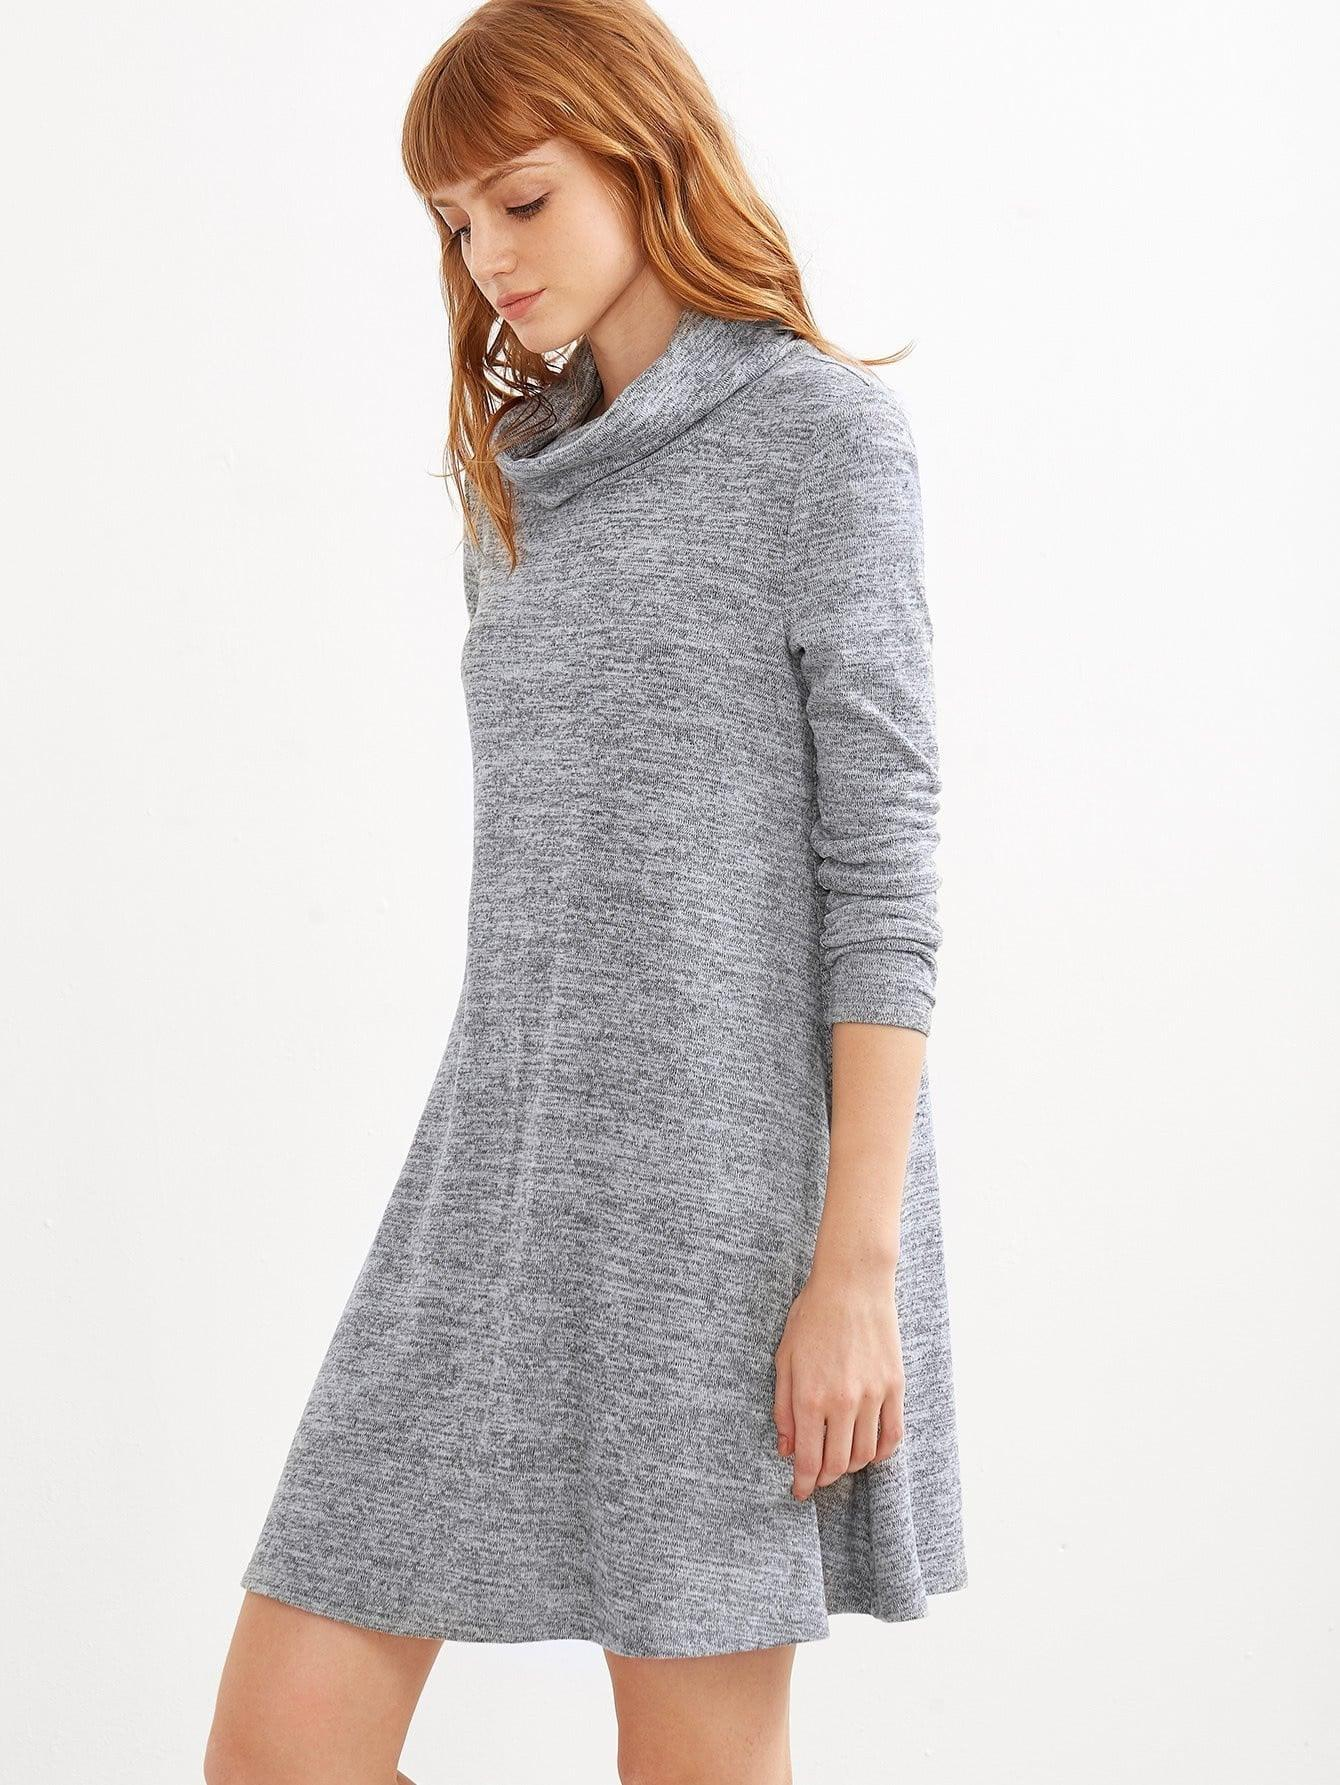 Marled Knit Swing Dress - Dresses - Zooomberg - Zoomberg